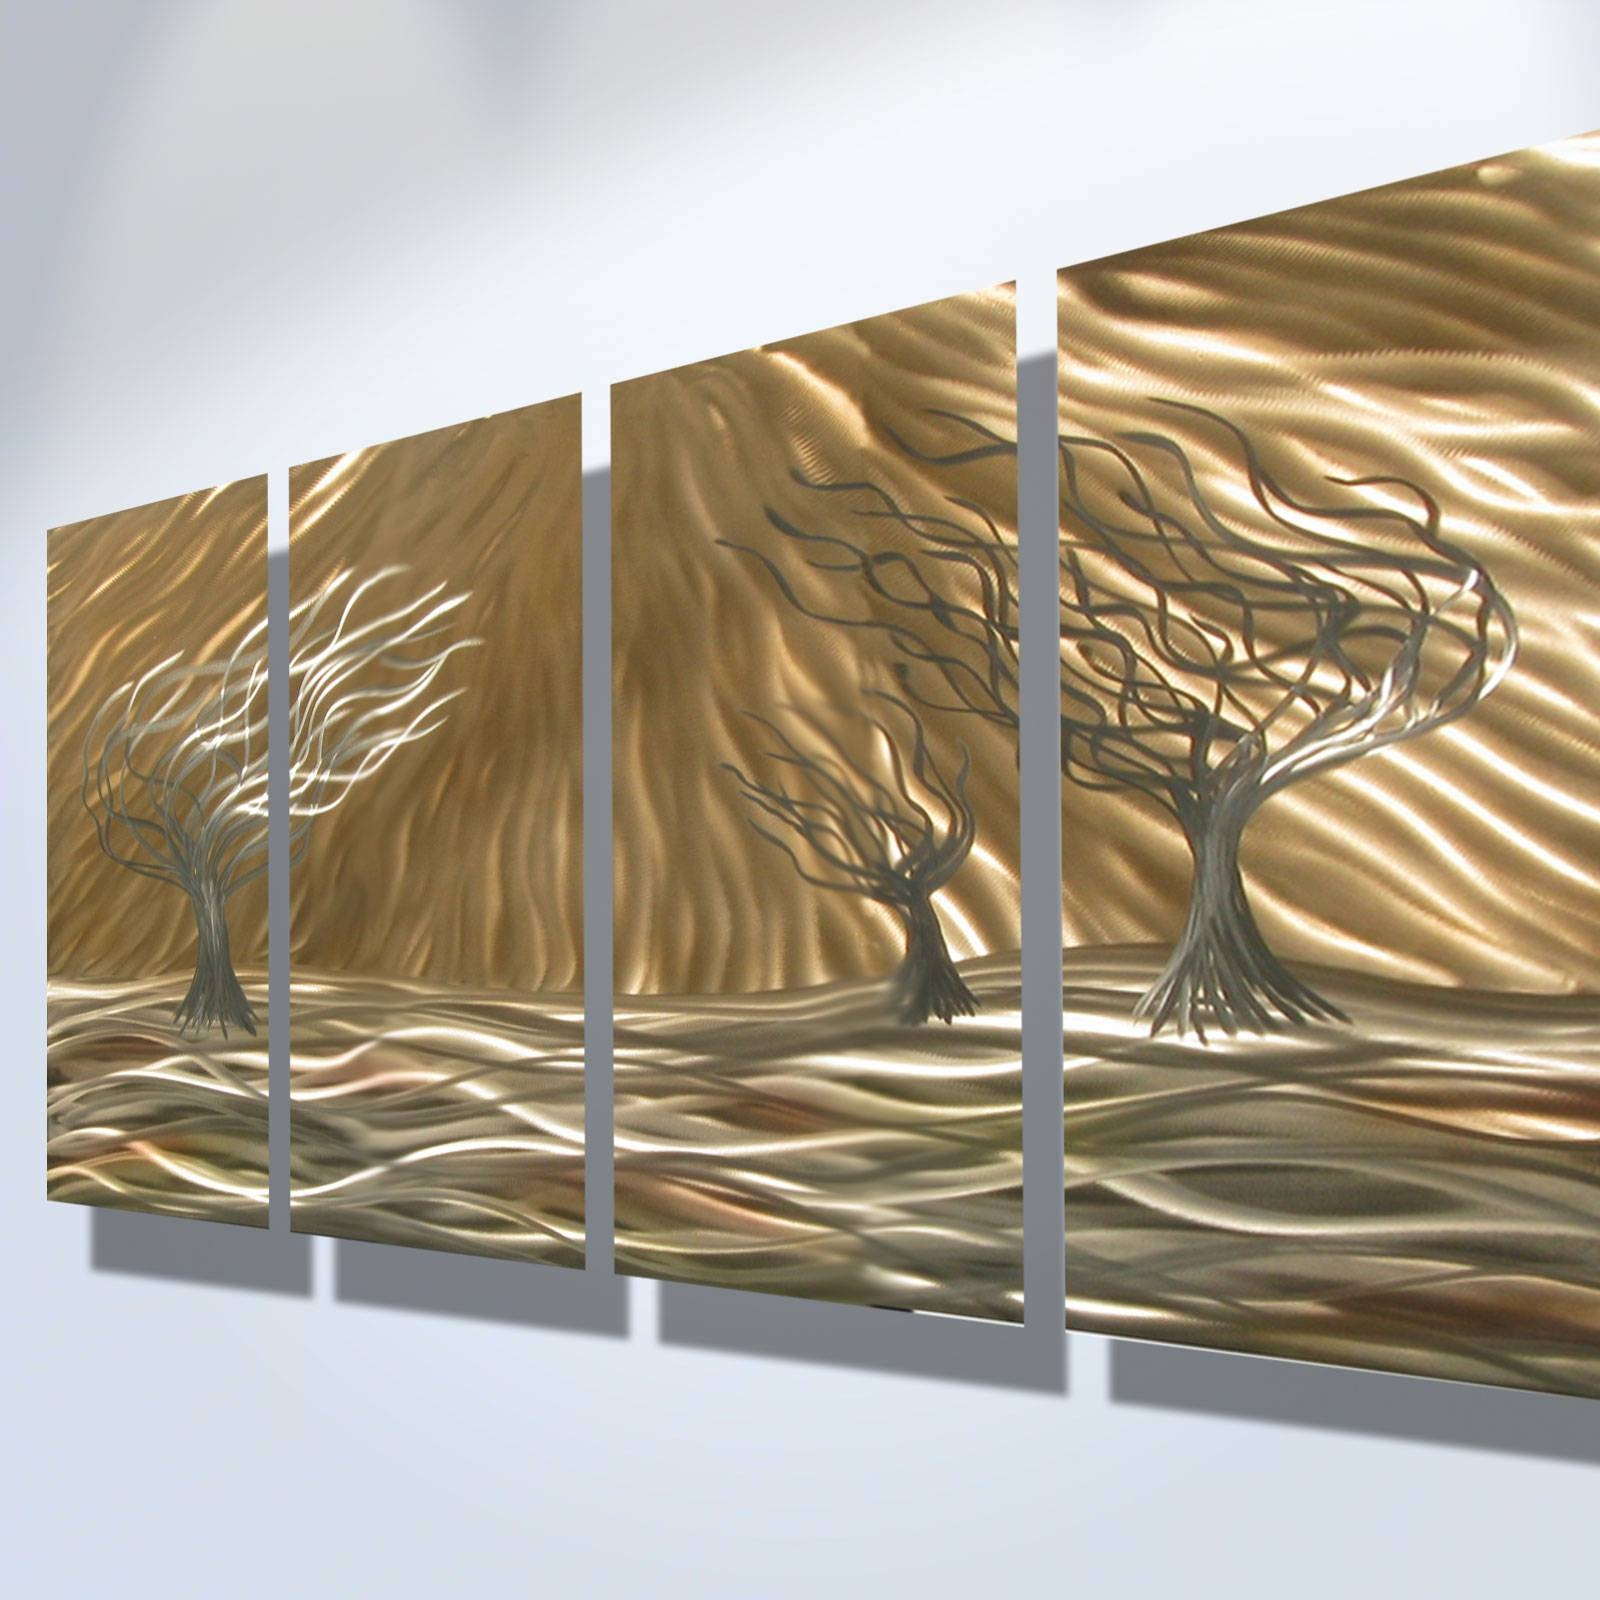 3 Trees 4 Panel – Abstract Metal Wall Art Contemporary Modern Pertaining To Best And Newest Contemporary Metal Wall Art Decor (View 7 of 20)